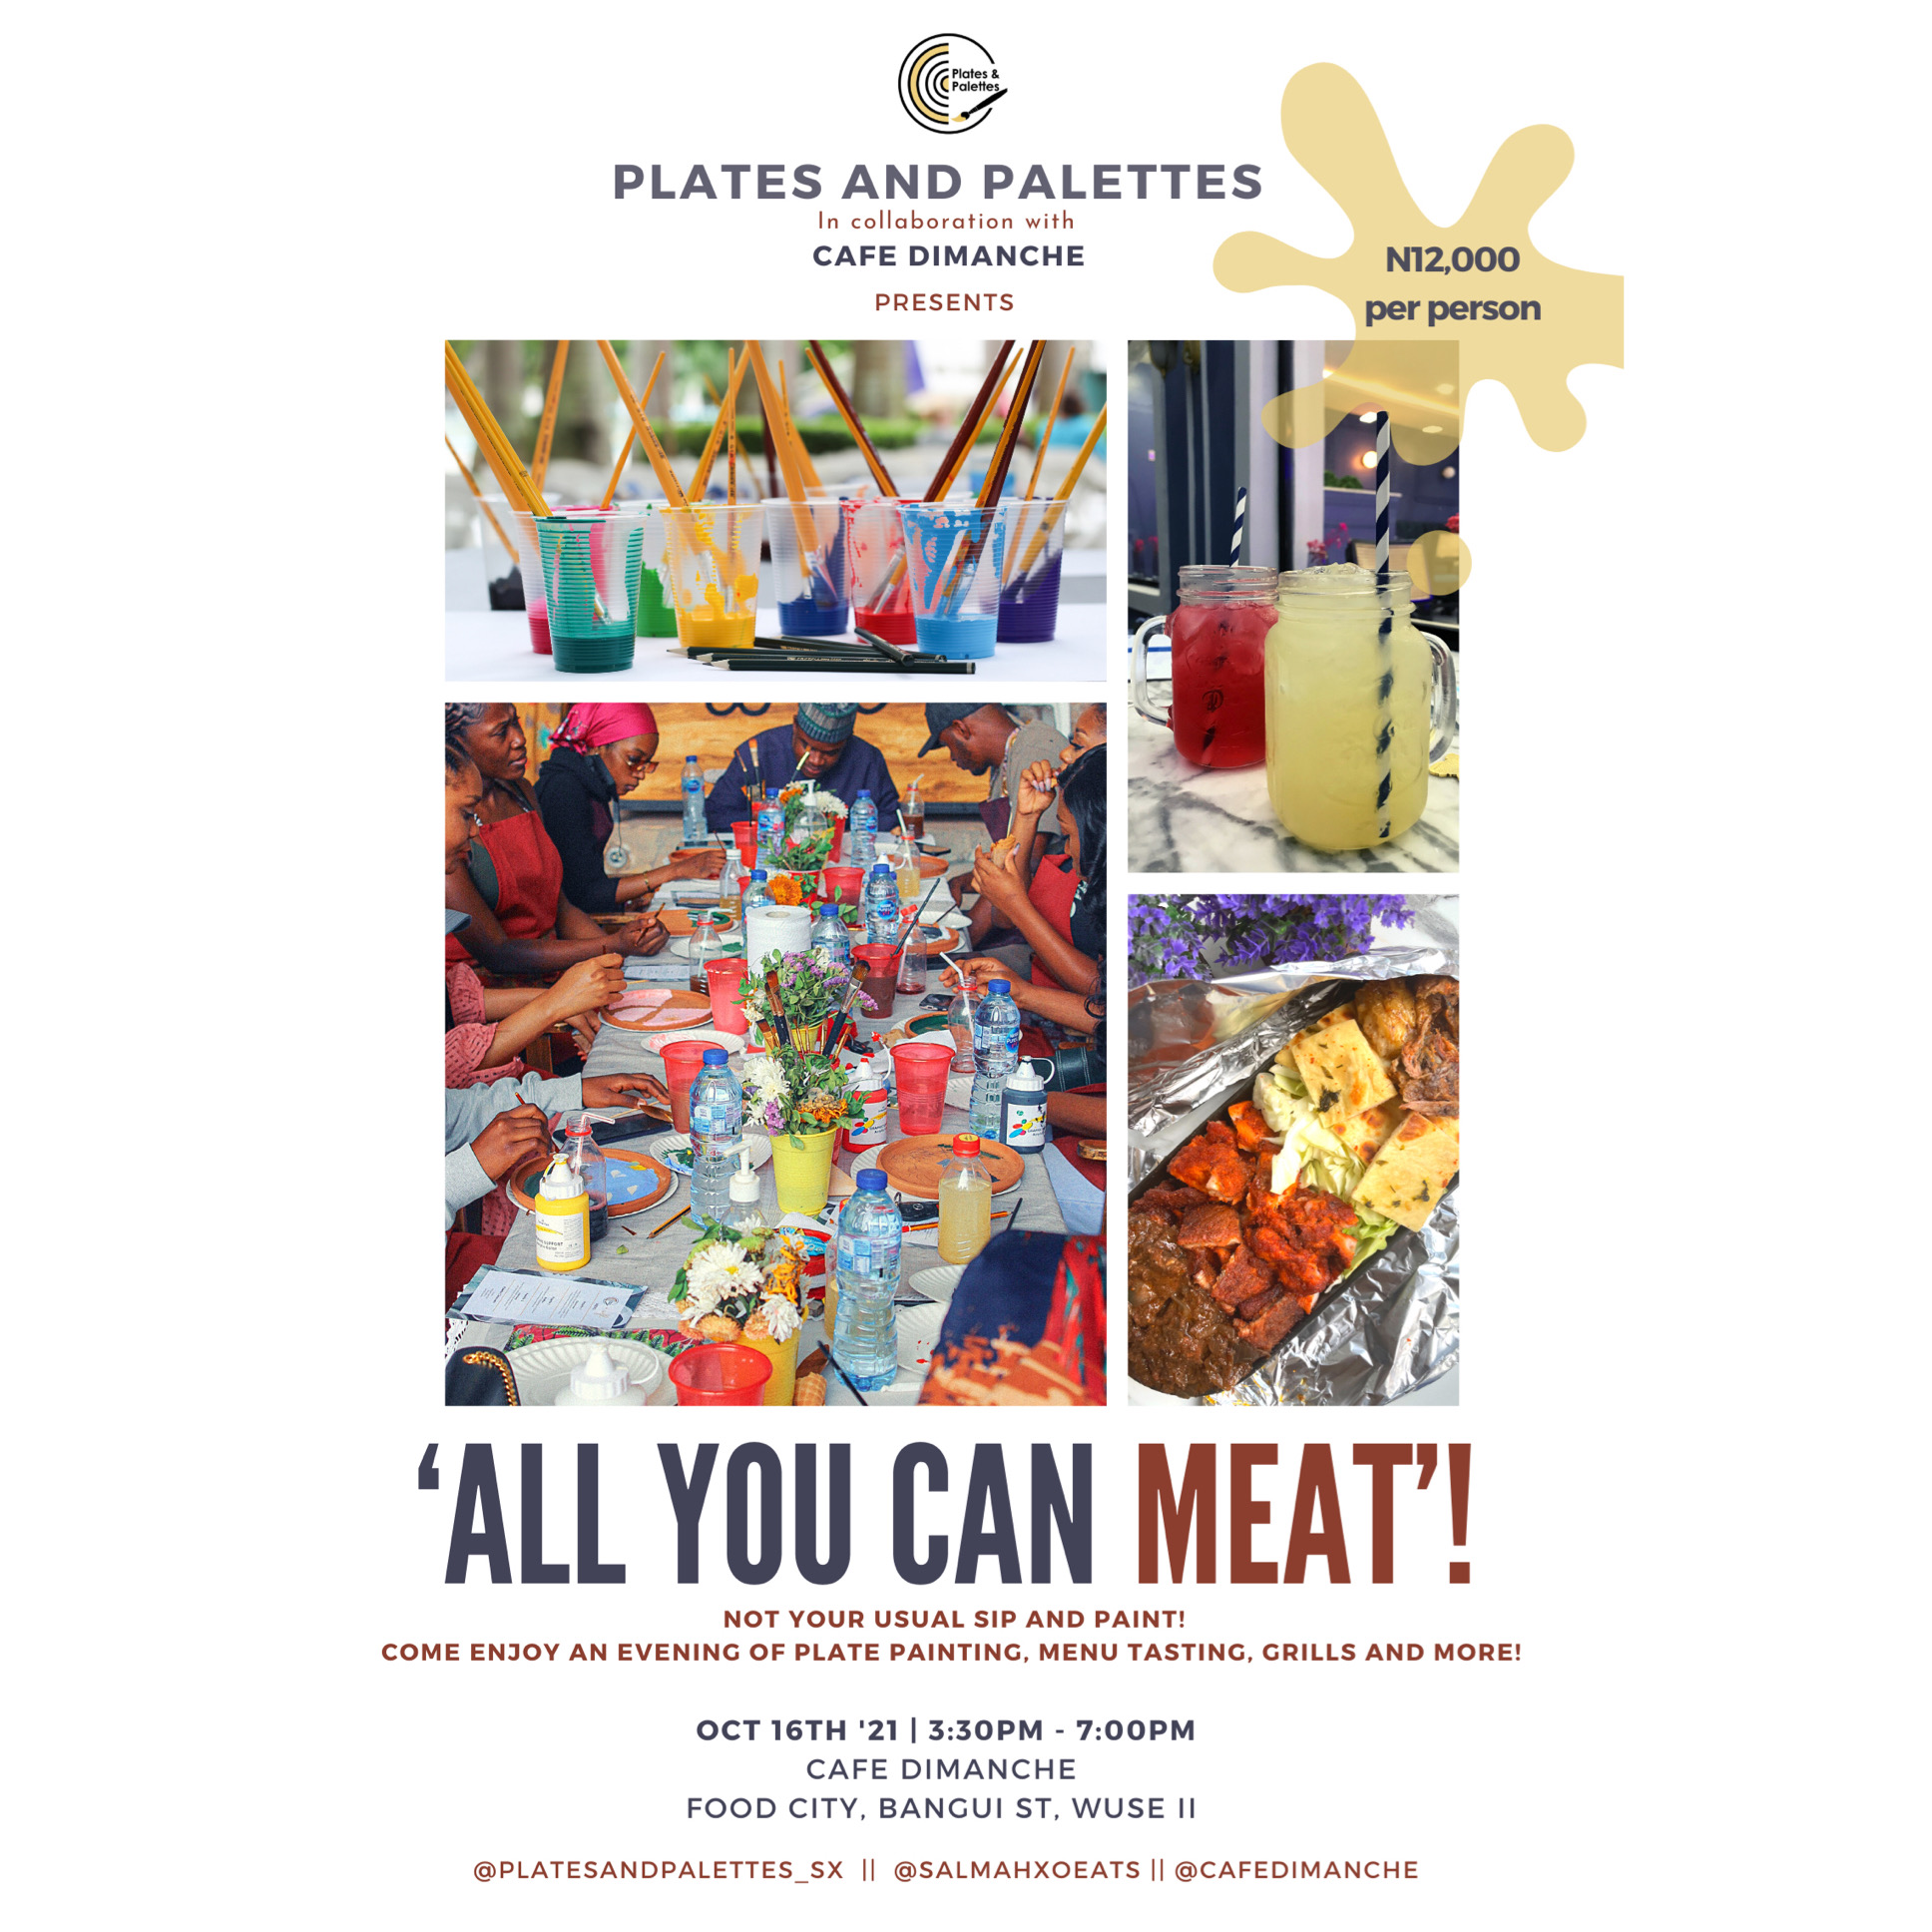 Plates & Palettes VIII - All You Can Meat Post free event in Nigeria using tickethub.ng, buy and sell tickets to event